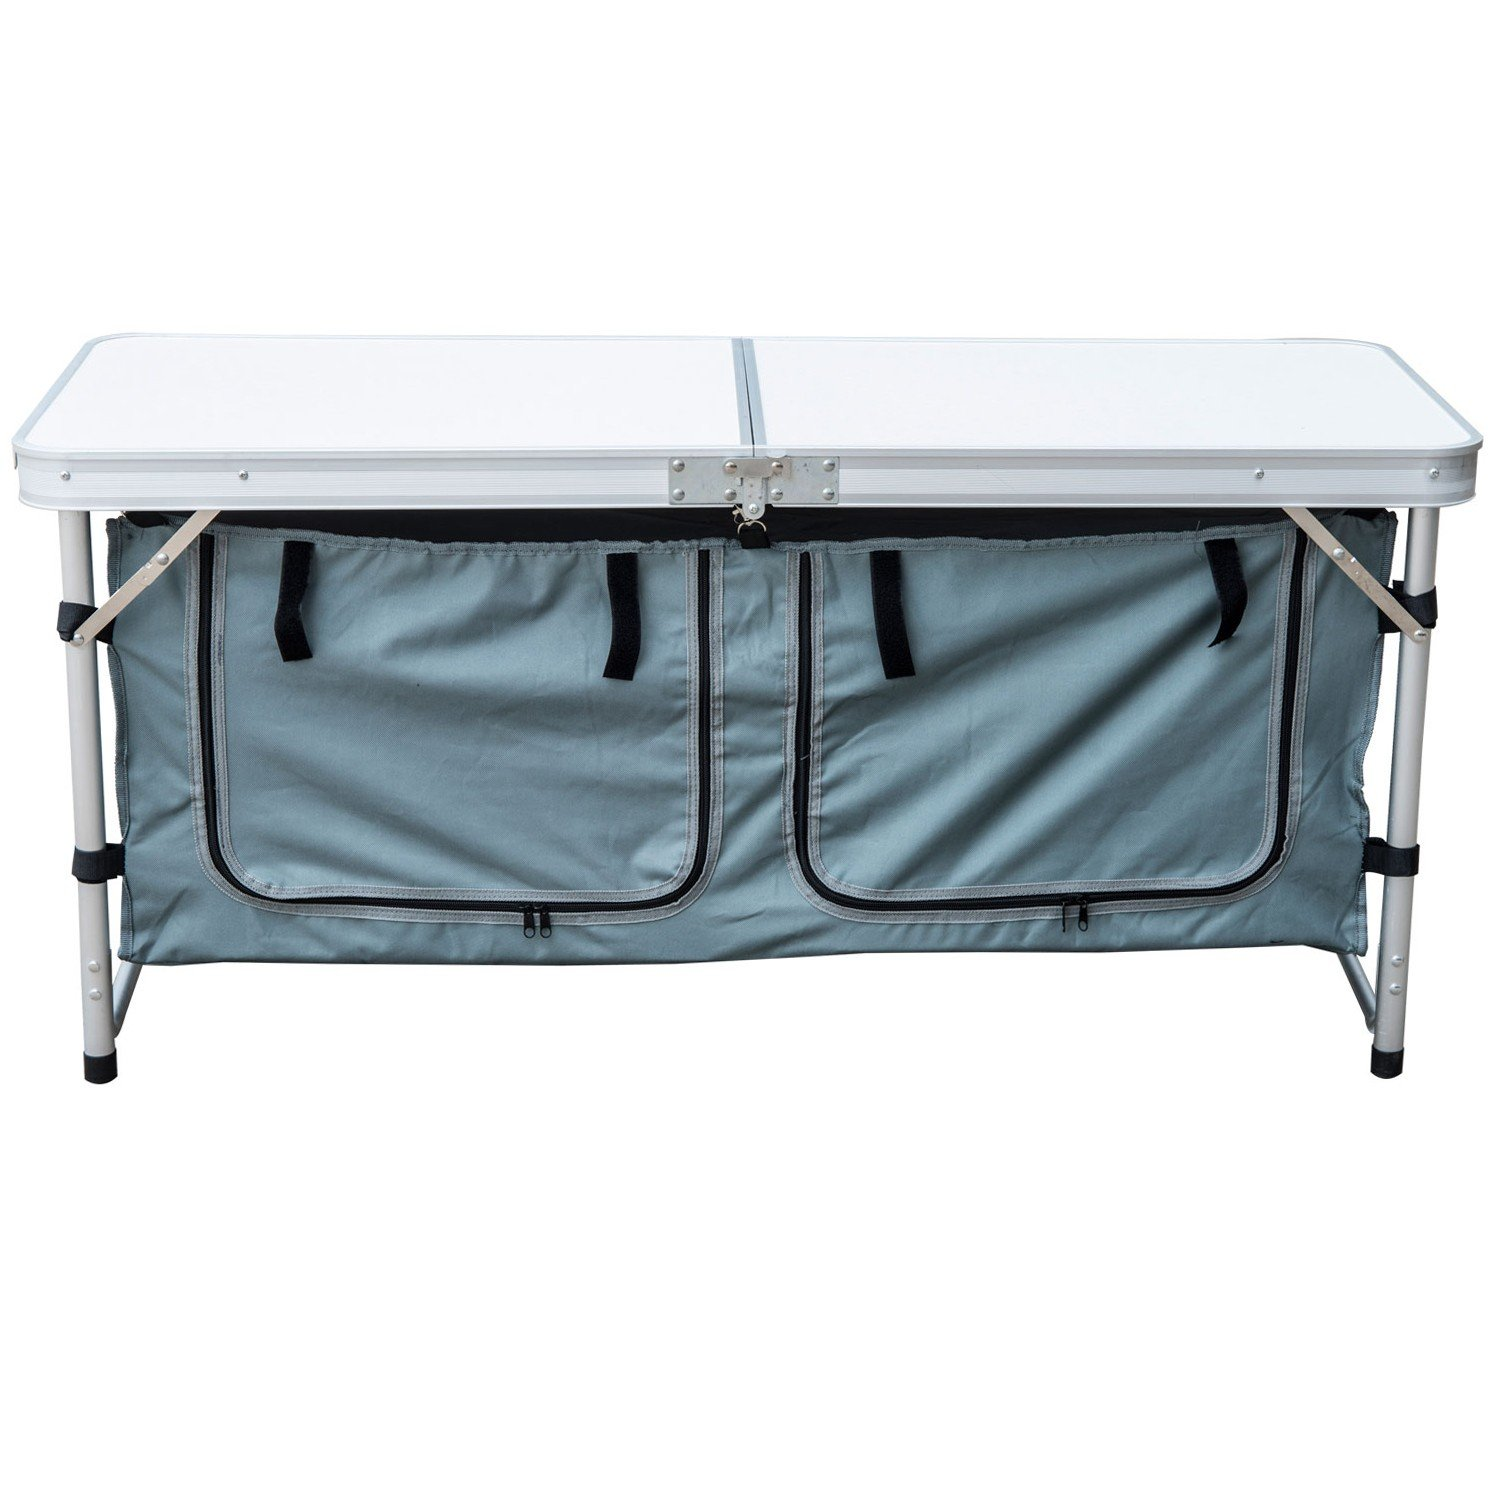 Outdoor Picnic Aluminum Folding Camping Table Storage Organizer w/ Carrying Handle With Ebook